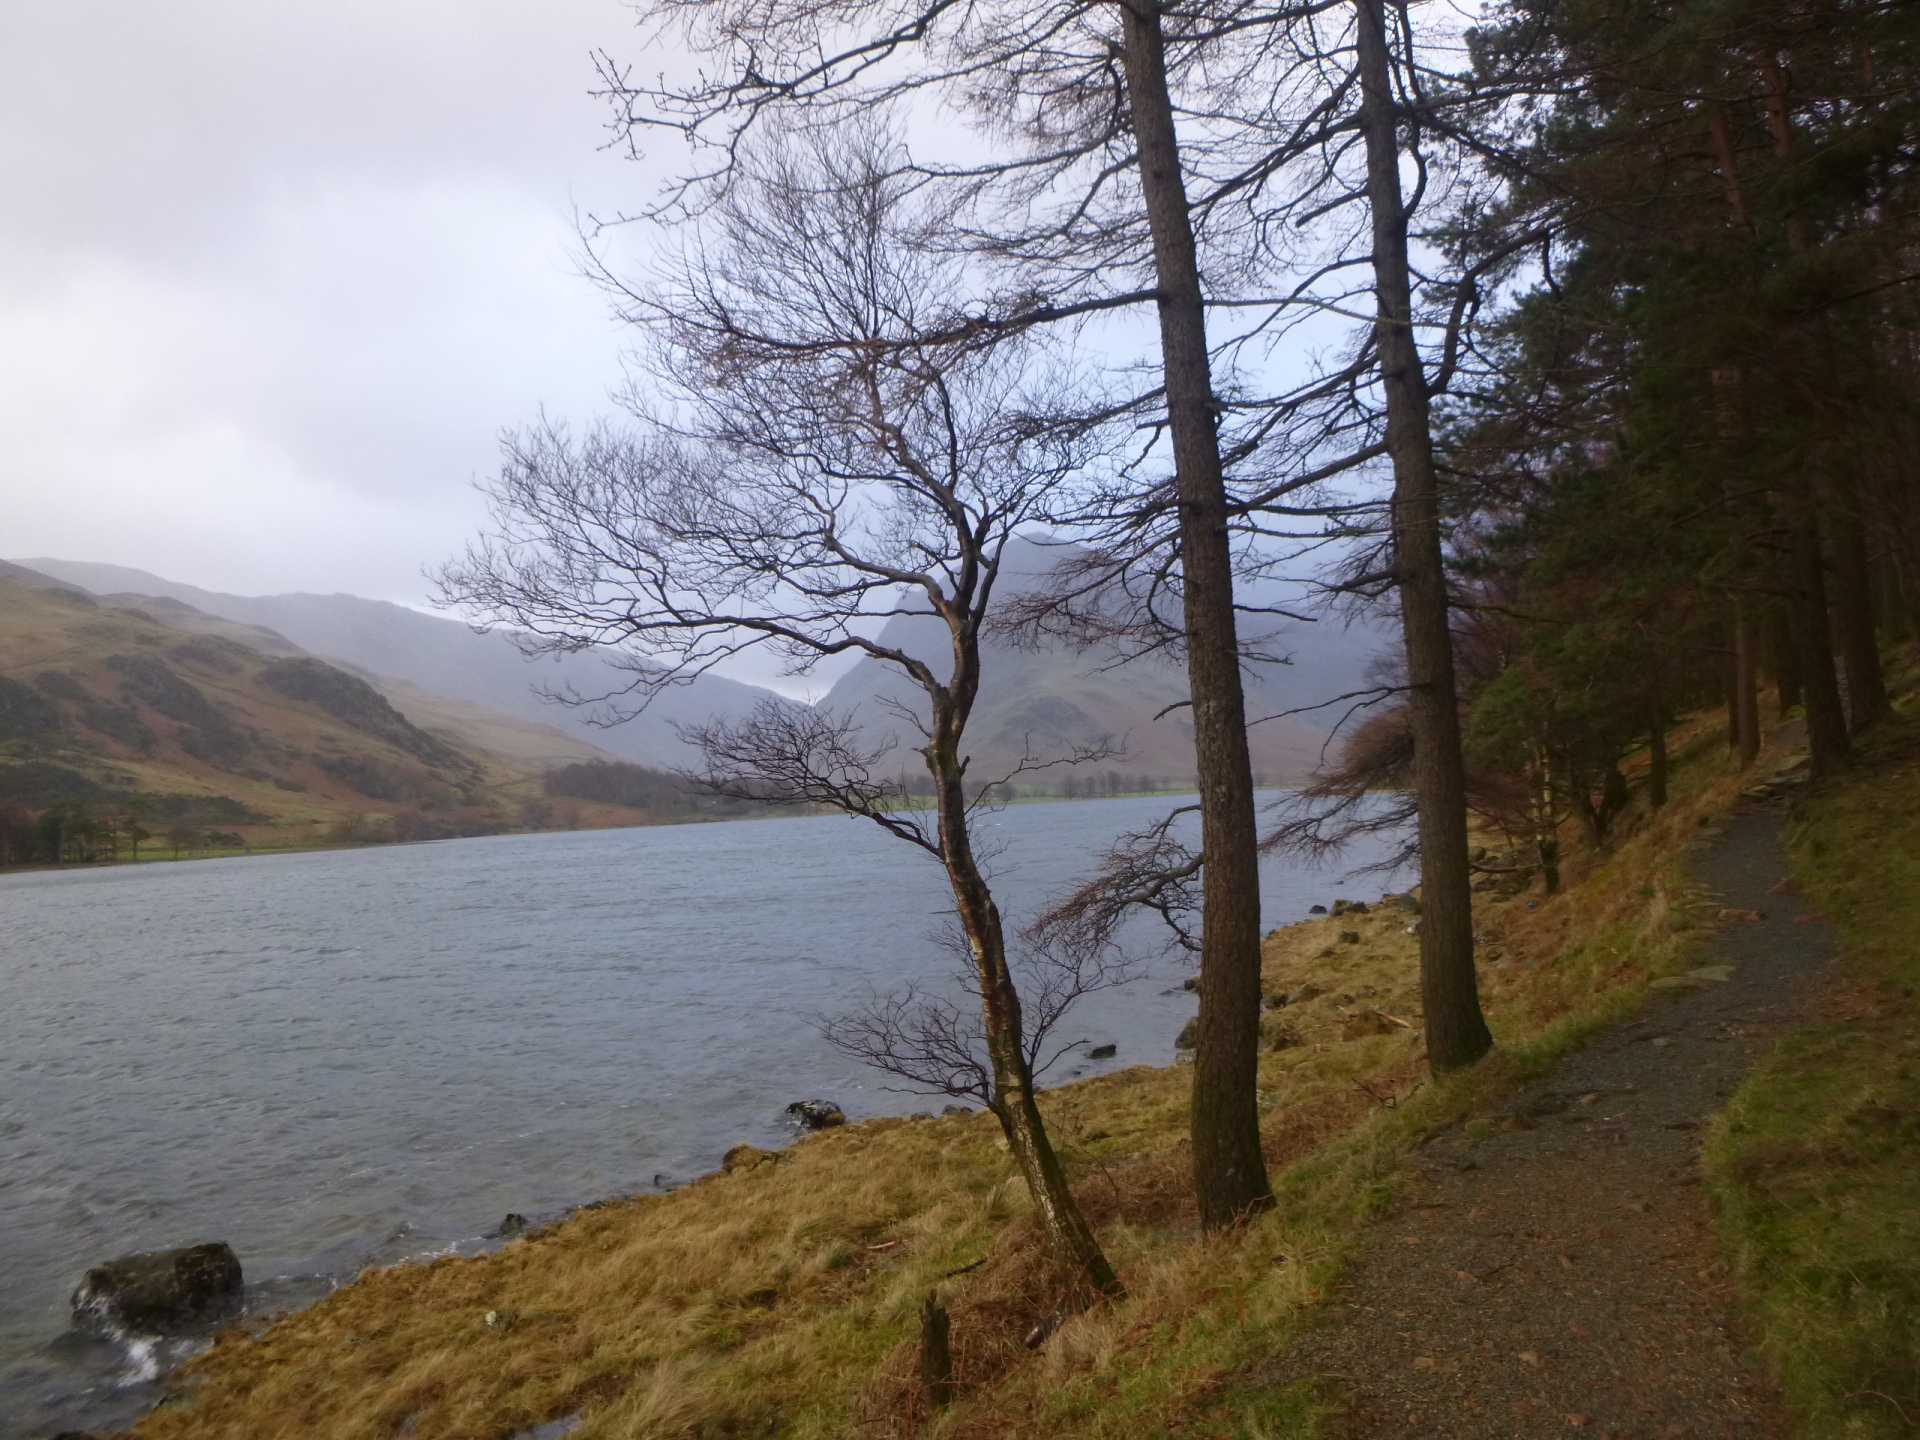 From the Pyrenees to the English Lake District at New Year